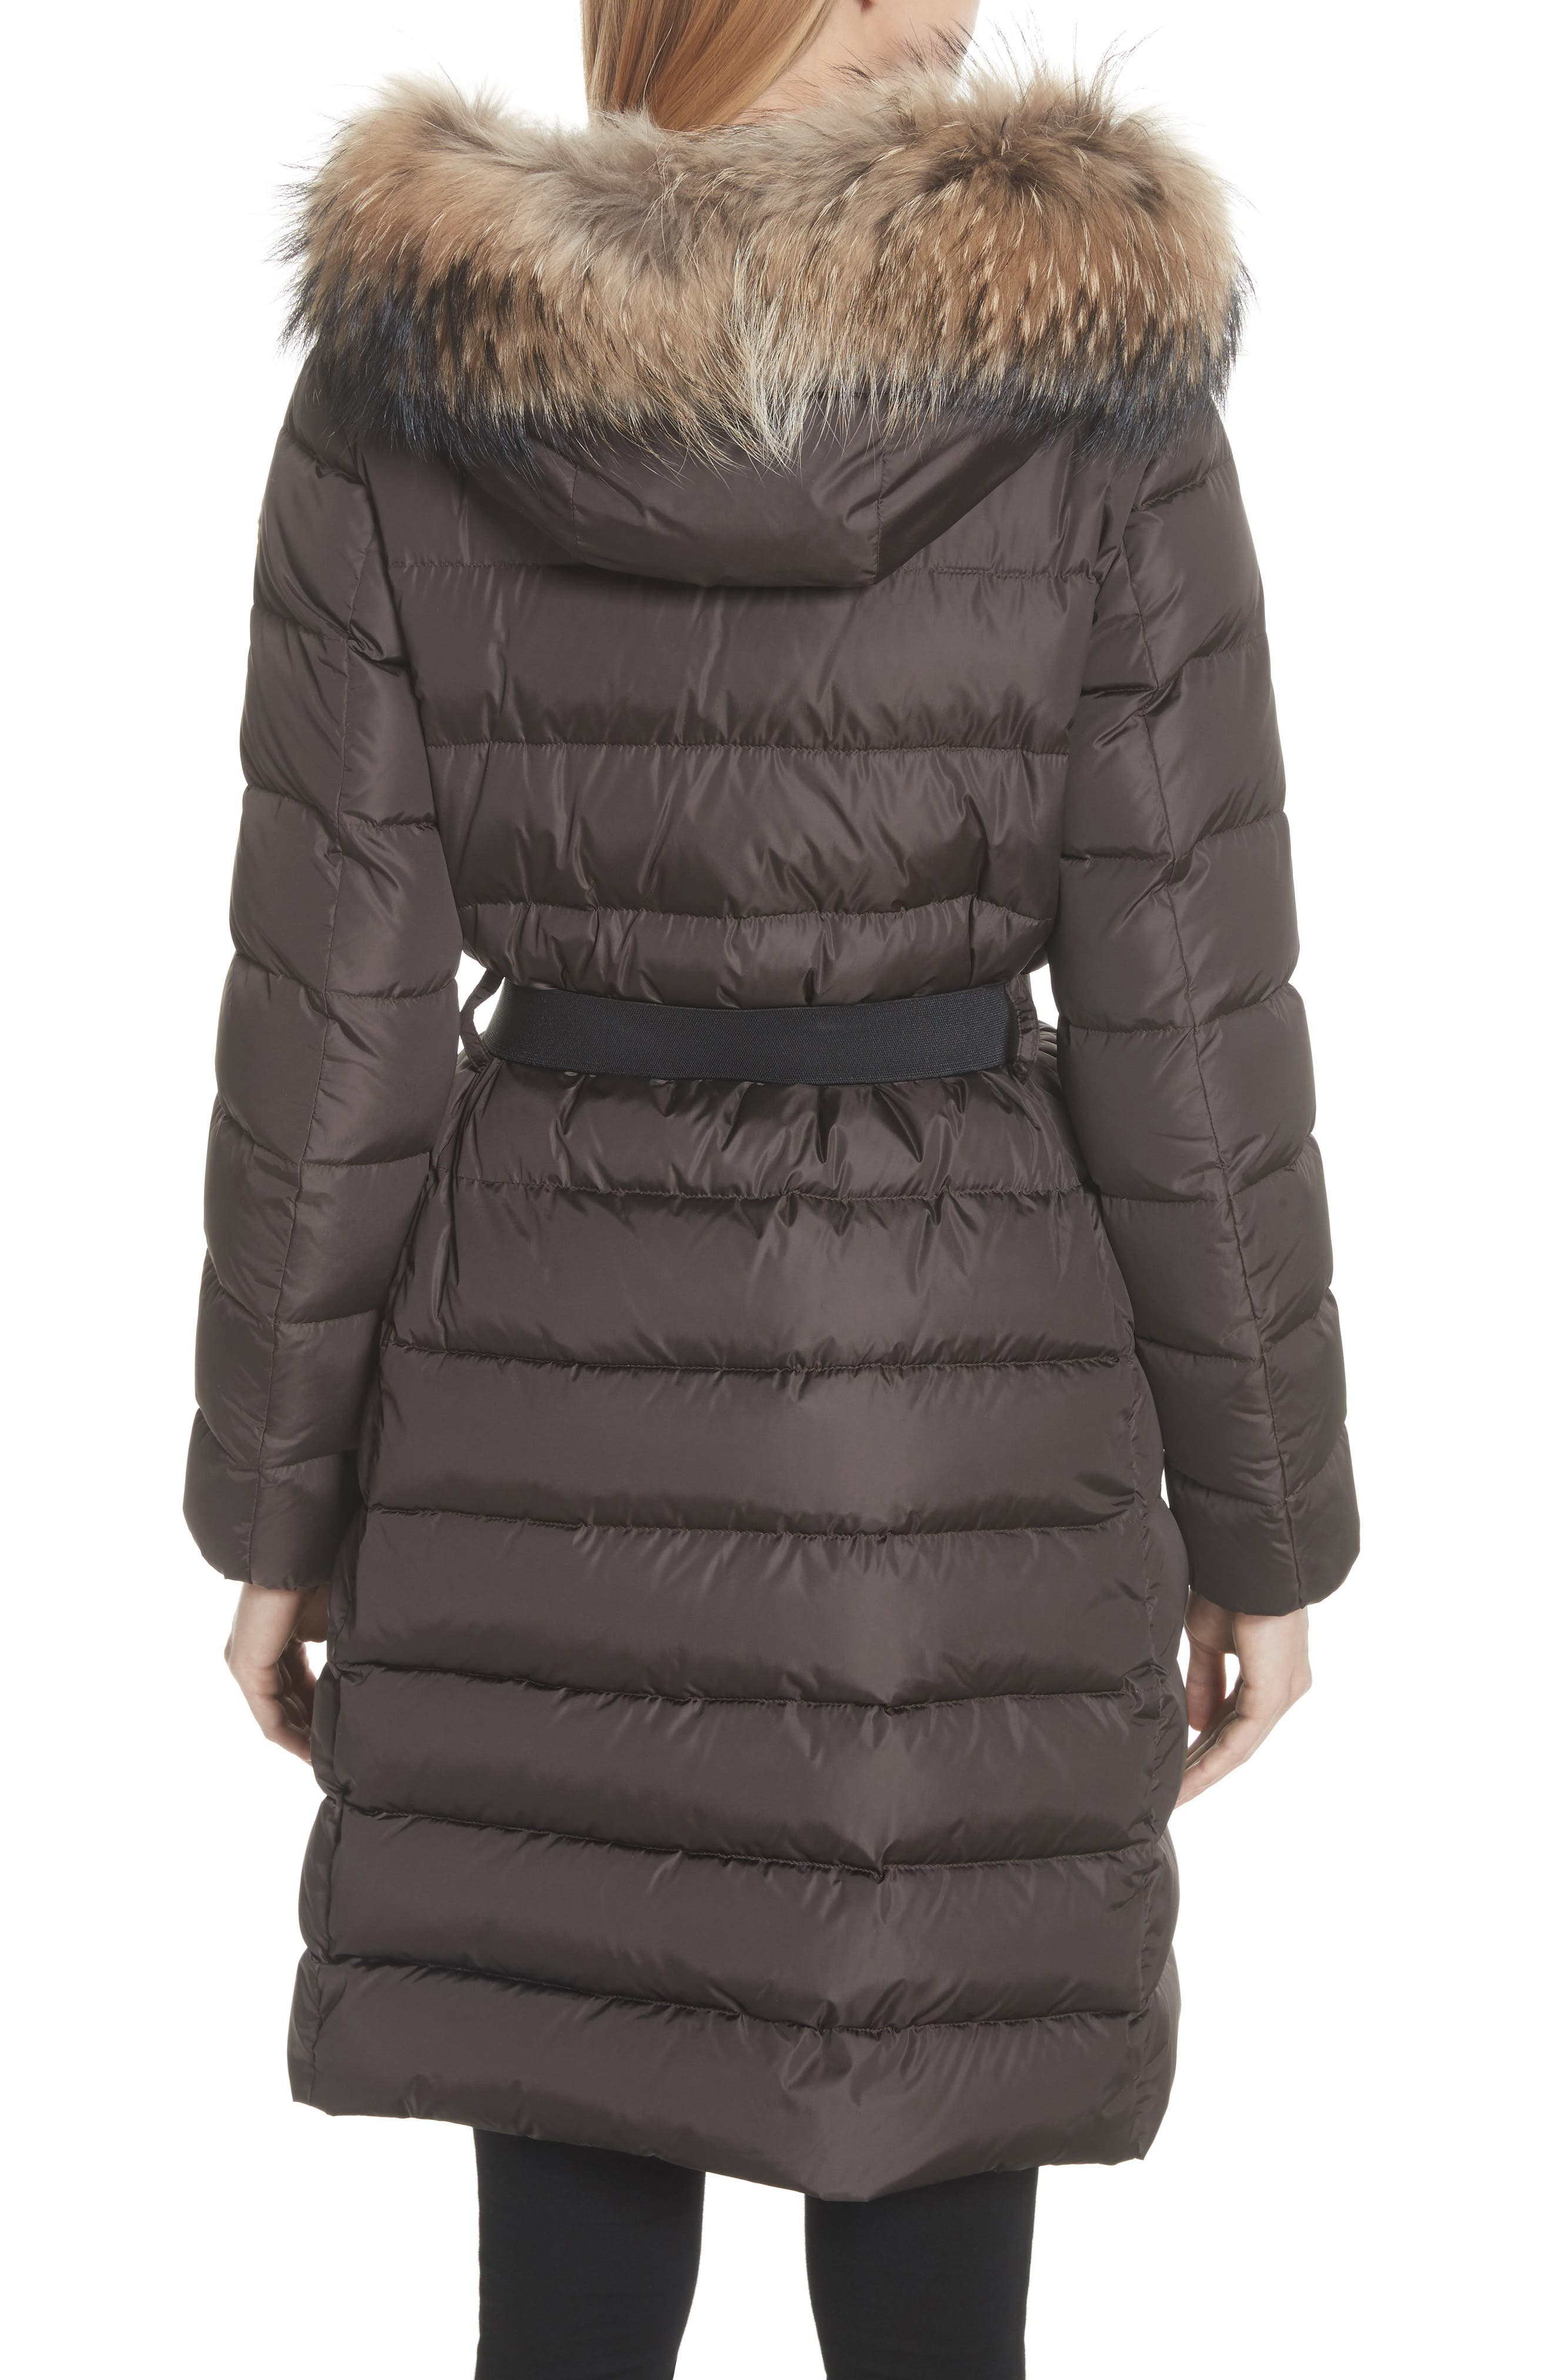 'Khloe' Water Resistant Nylon Down Puffer Parka with Removable Genuine Fox Fur Trim,                             Alternate thumbnail 3, color,                             BROWN